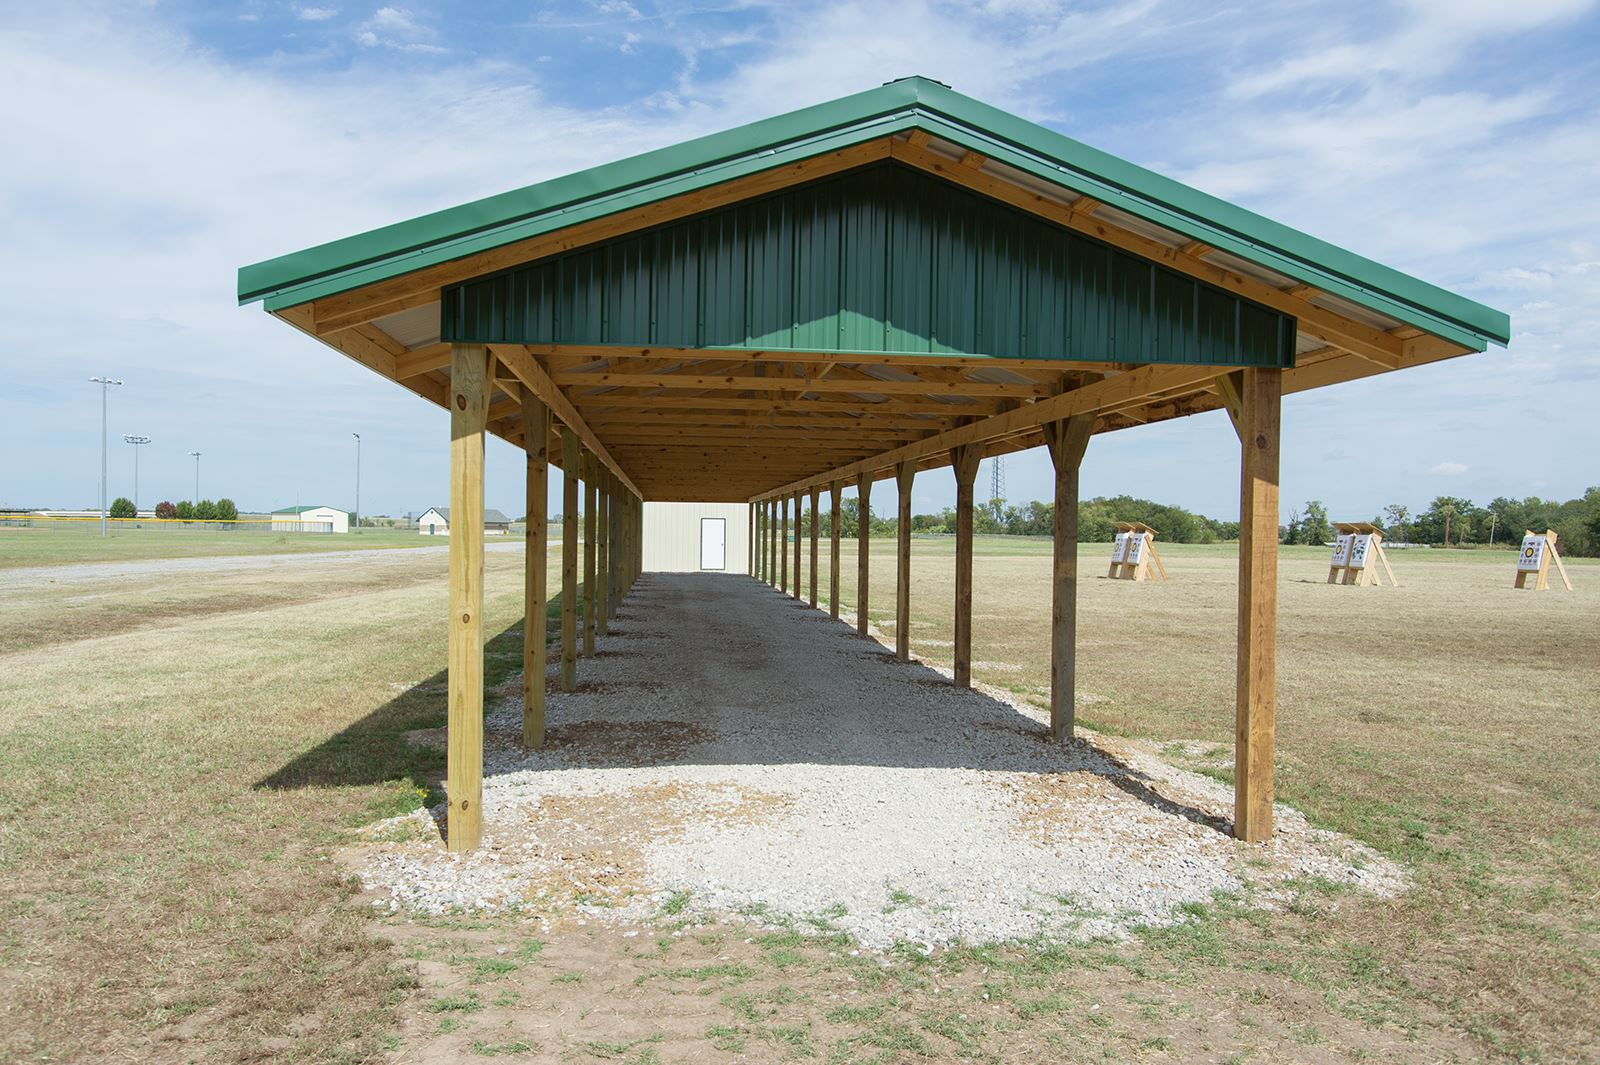 Archery shooting pavilion